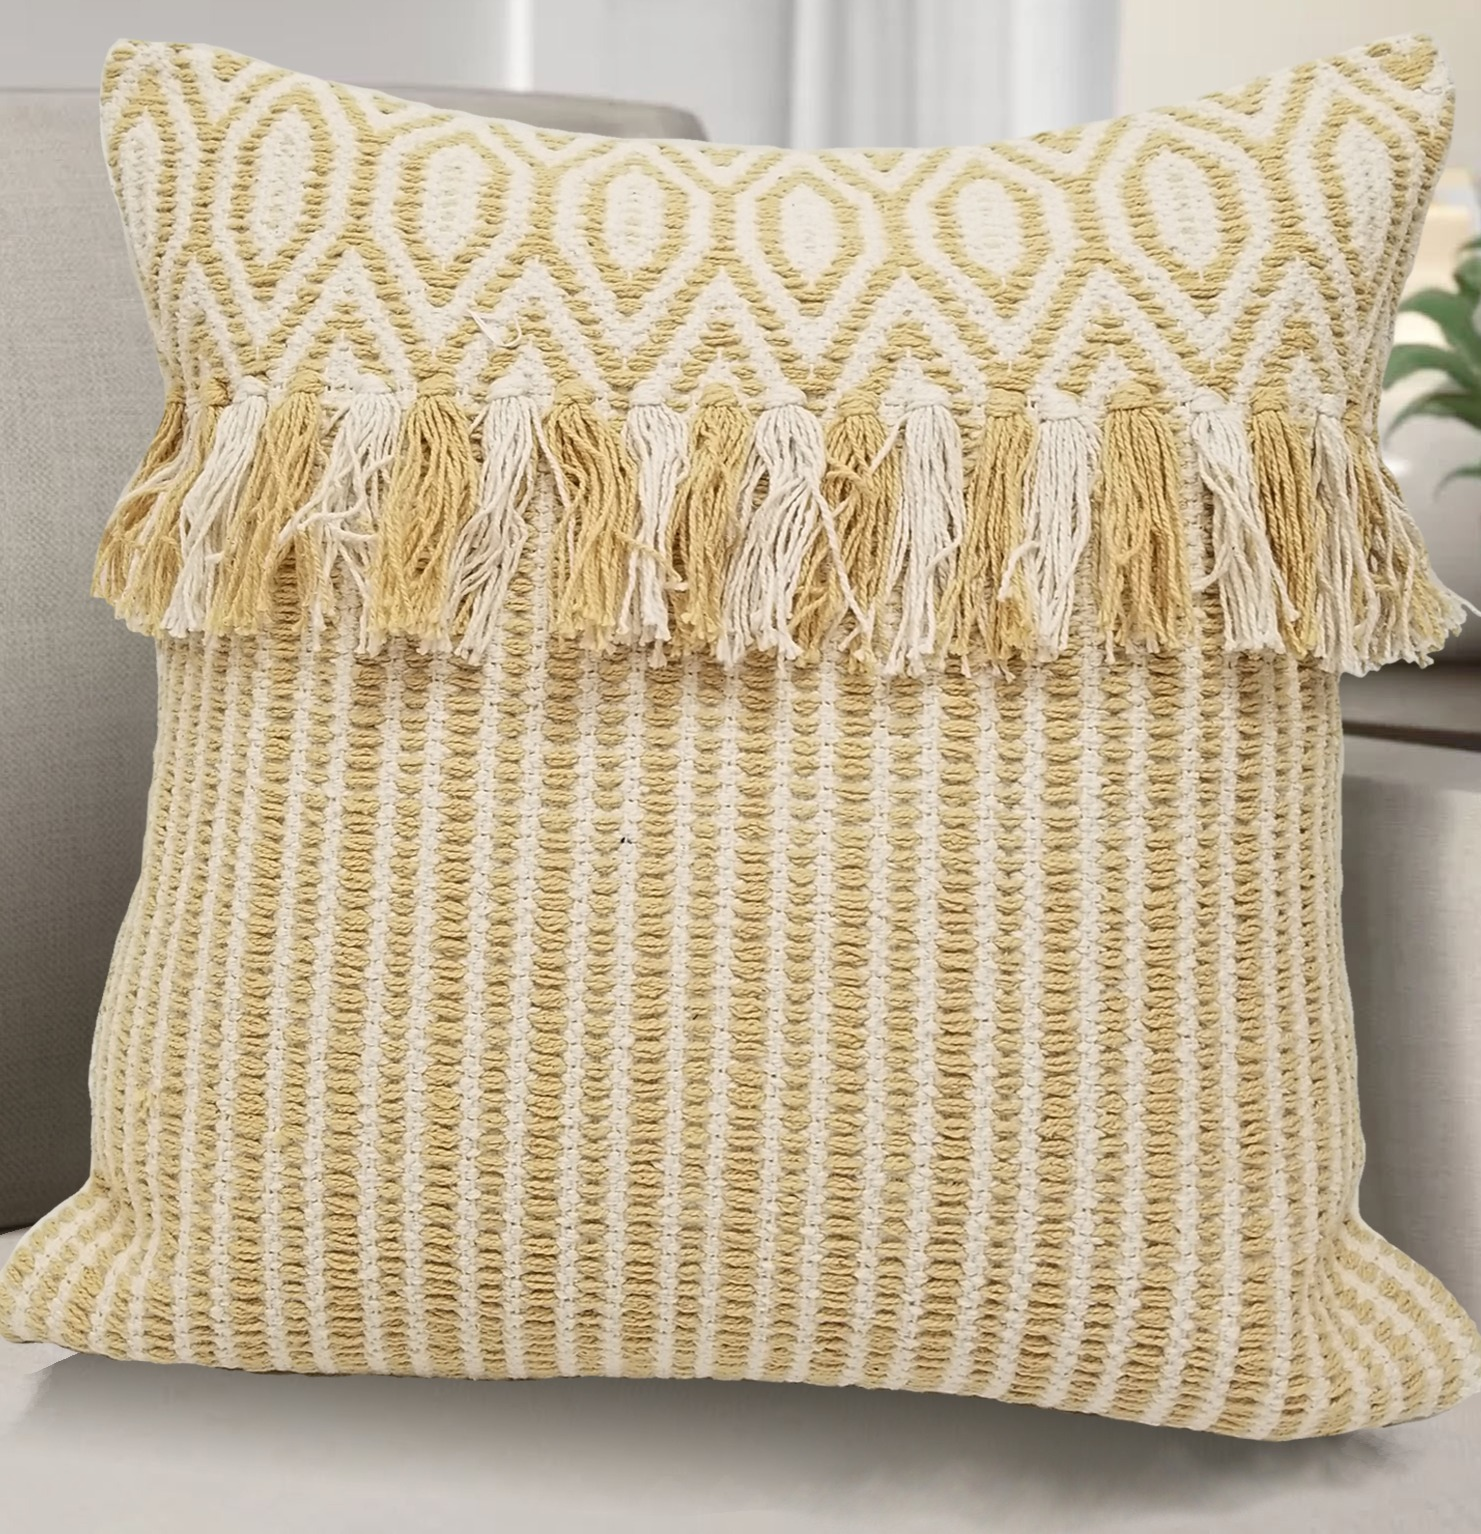 Avani Decorative pillow